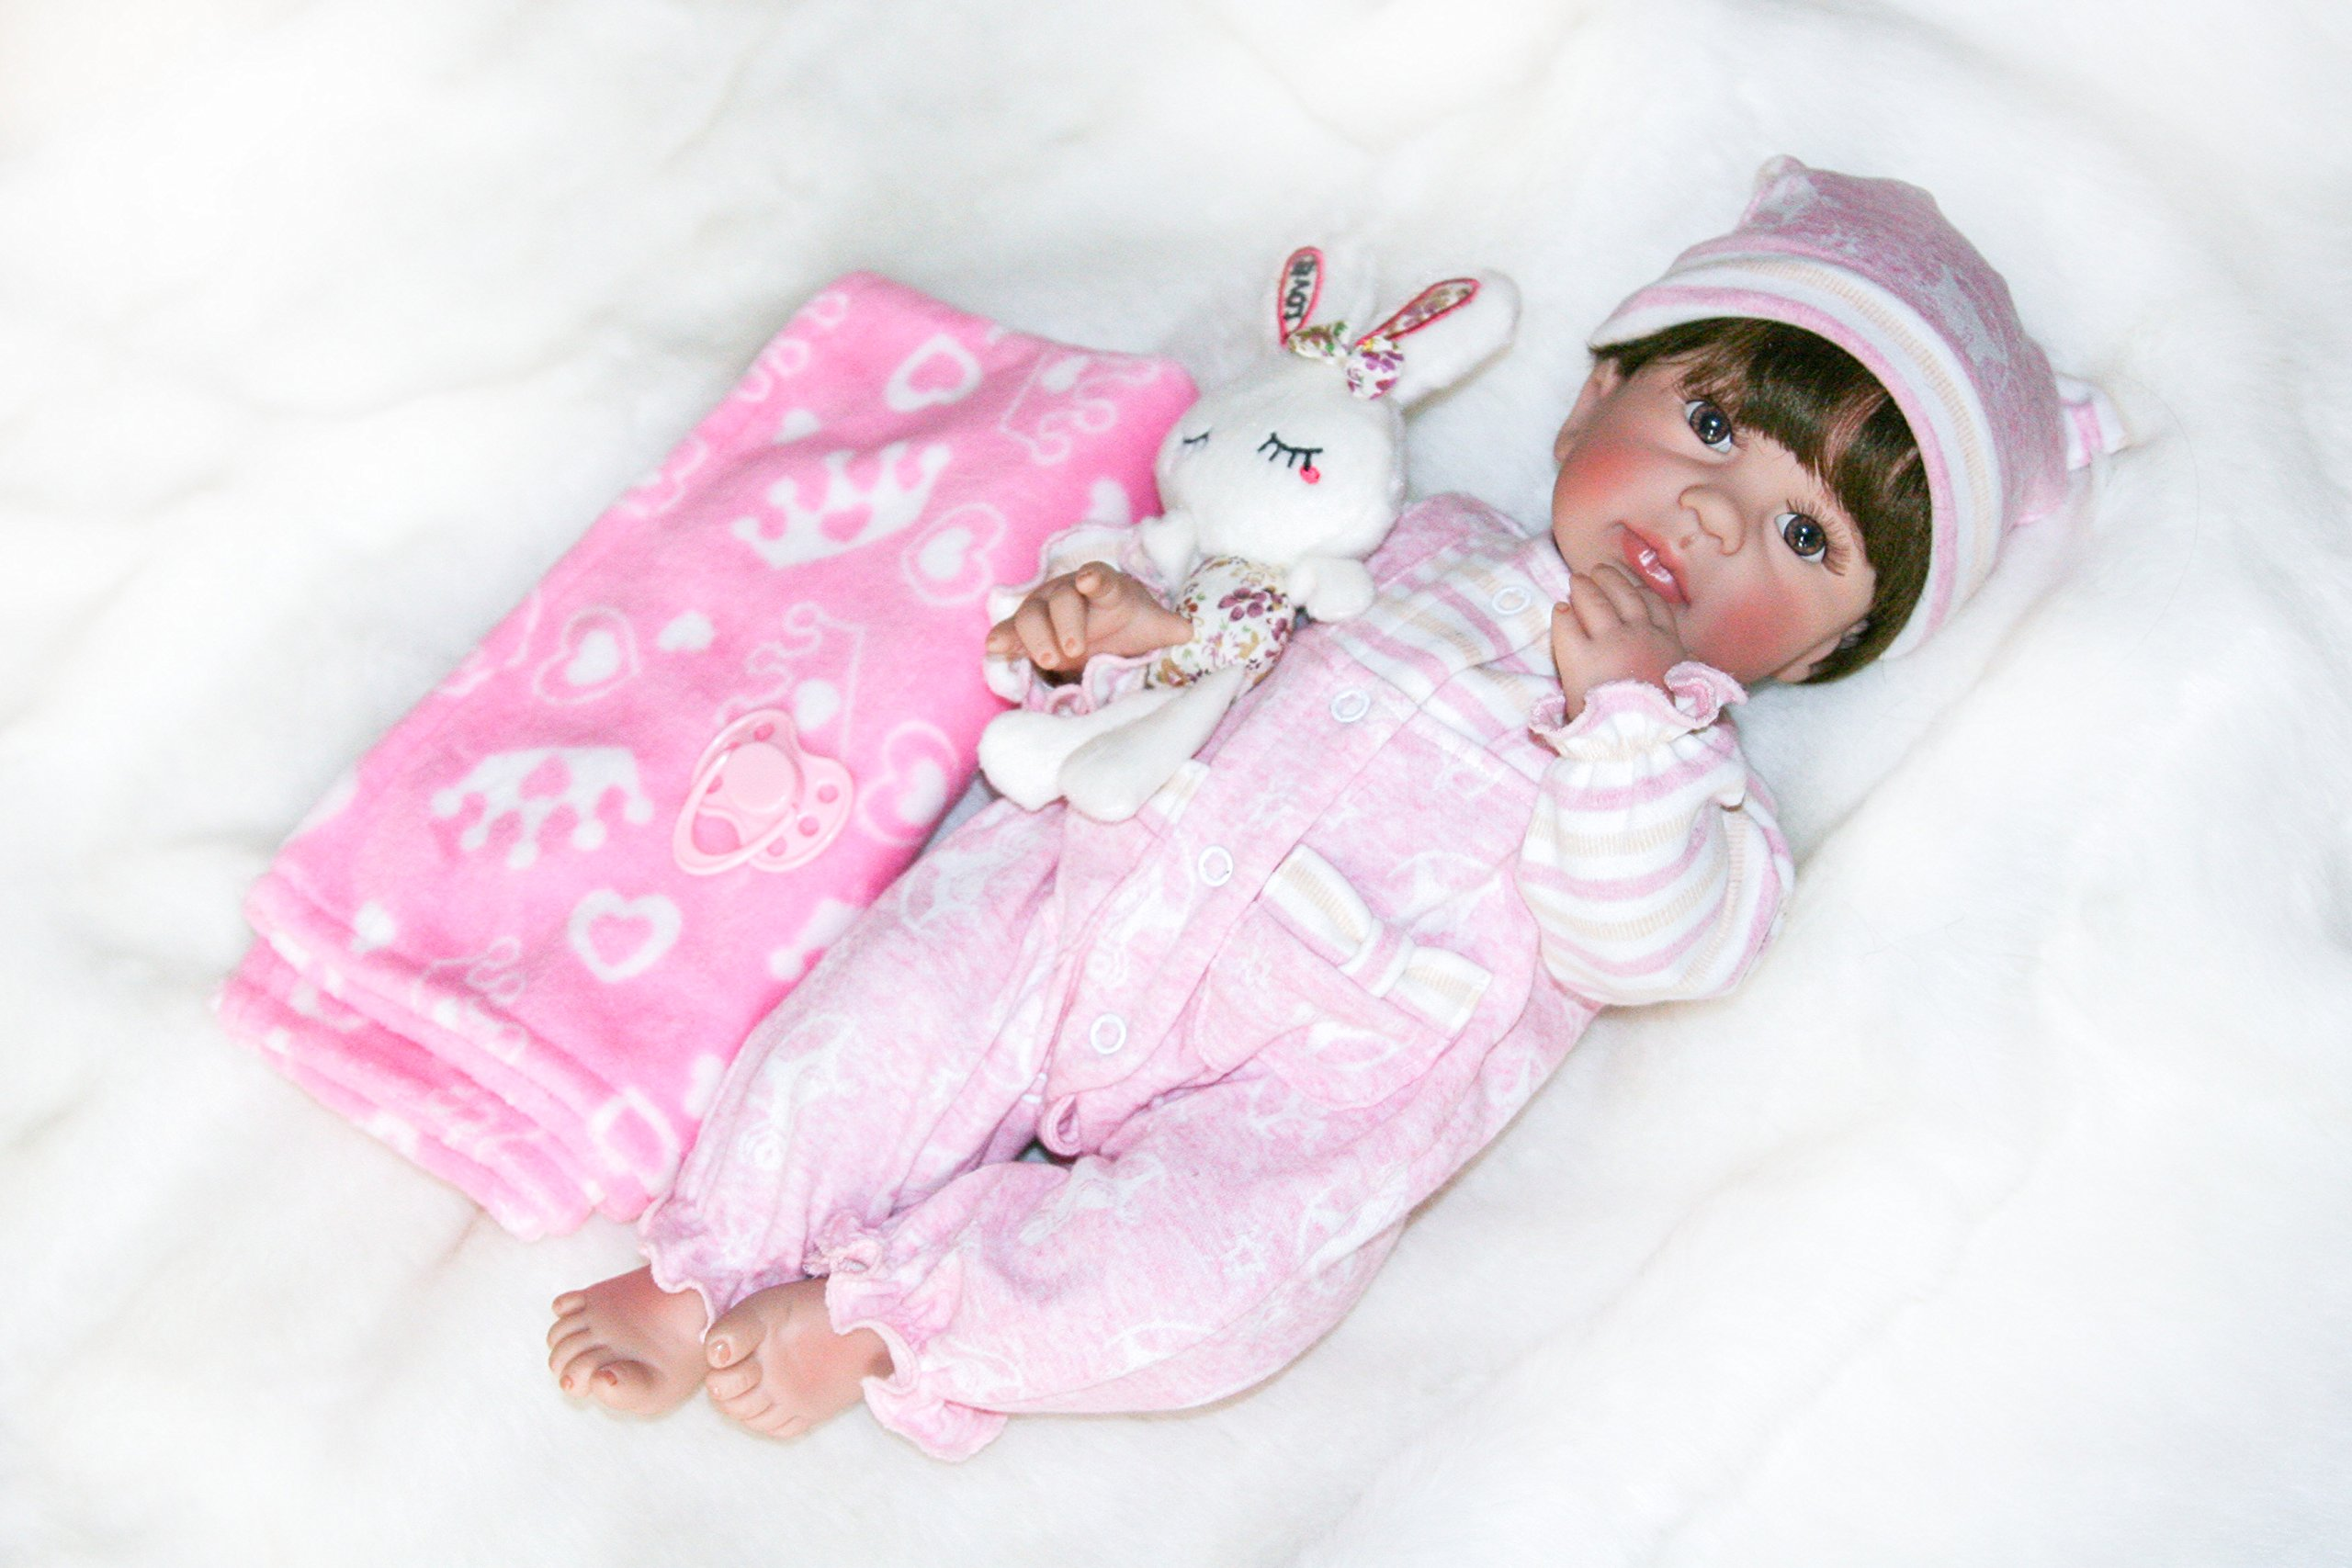 Pursue Baby Washable Hard Vinyl Full body Lifelike Poseable Baby Doll with Hair Marissa, 22 Inch Real Life Newborn Baby Dolls without Sex Children Toy